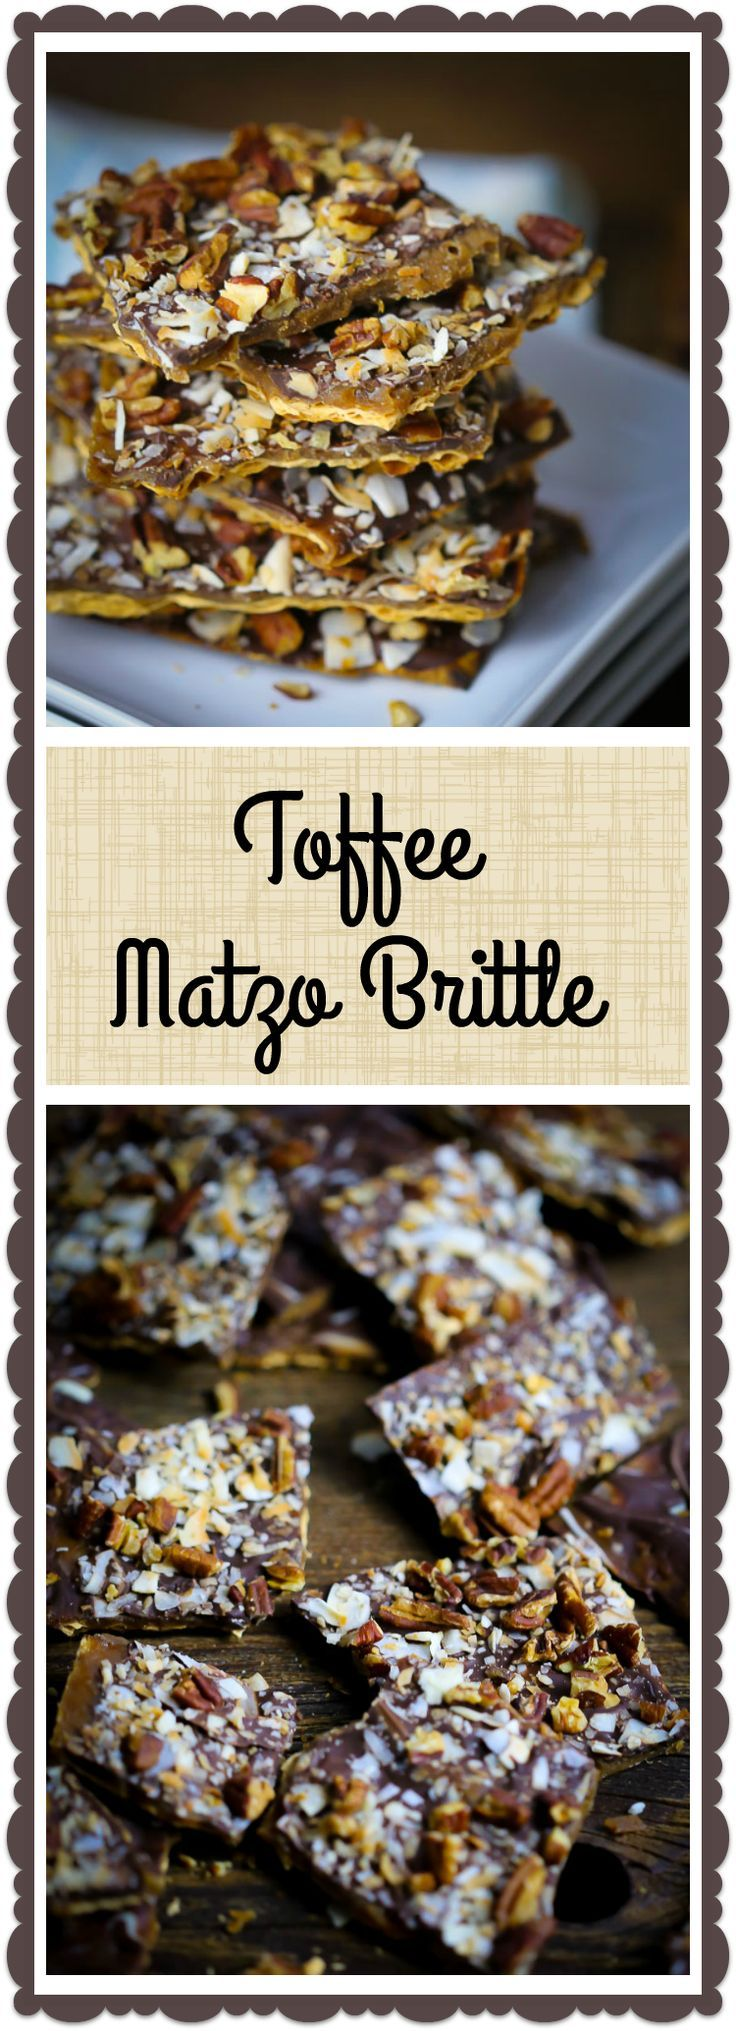 Crispy matzo is layered with toffee, chocolate, pecans and coconut into a delectable Passover treat.